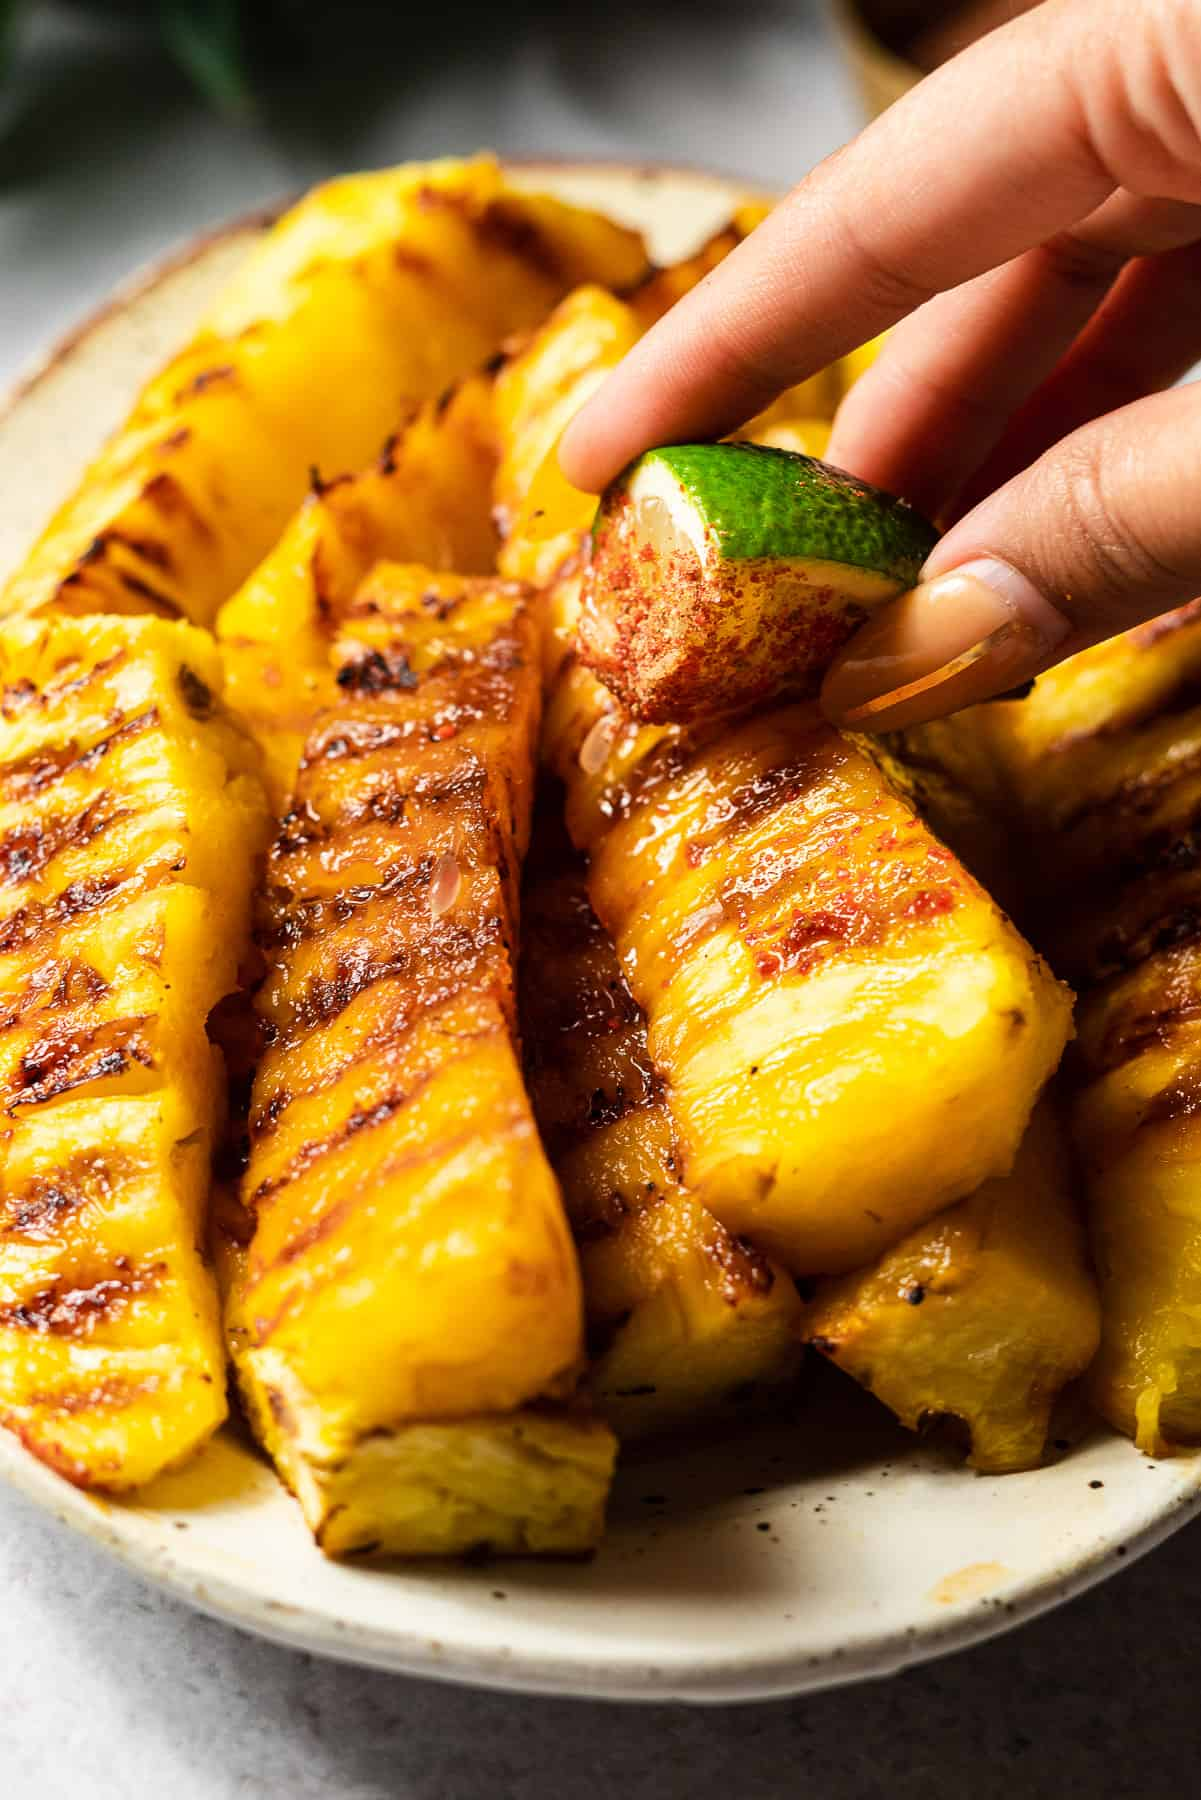 rubbing a lime on a grilled pineapple spear